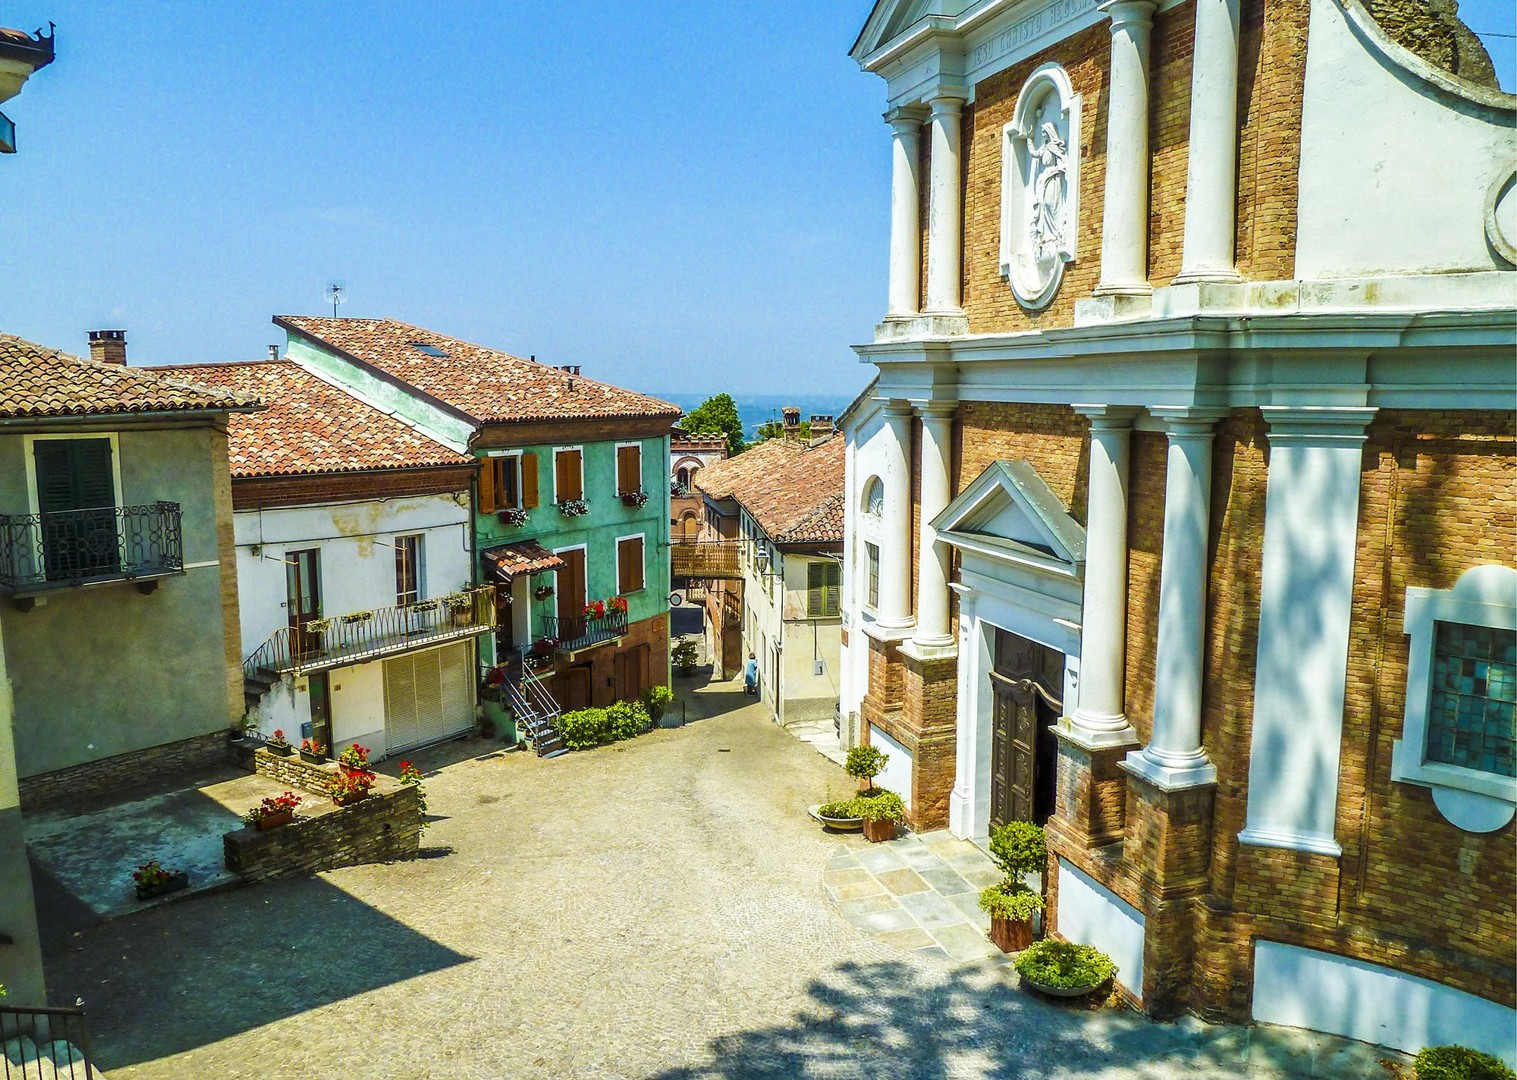 traditional-accommodation-agriturismo-saddle-skedaddle-cycling-holiday-tour-italy.jpg - Italy - Piemonte - Vineyards and Views - Self-Guided Leisure Cycling Holiday - Italia Leisure and Family Cycling